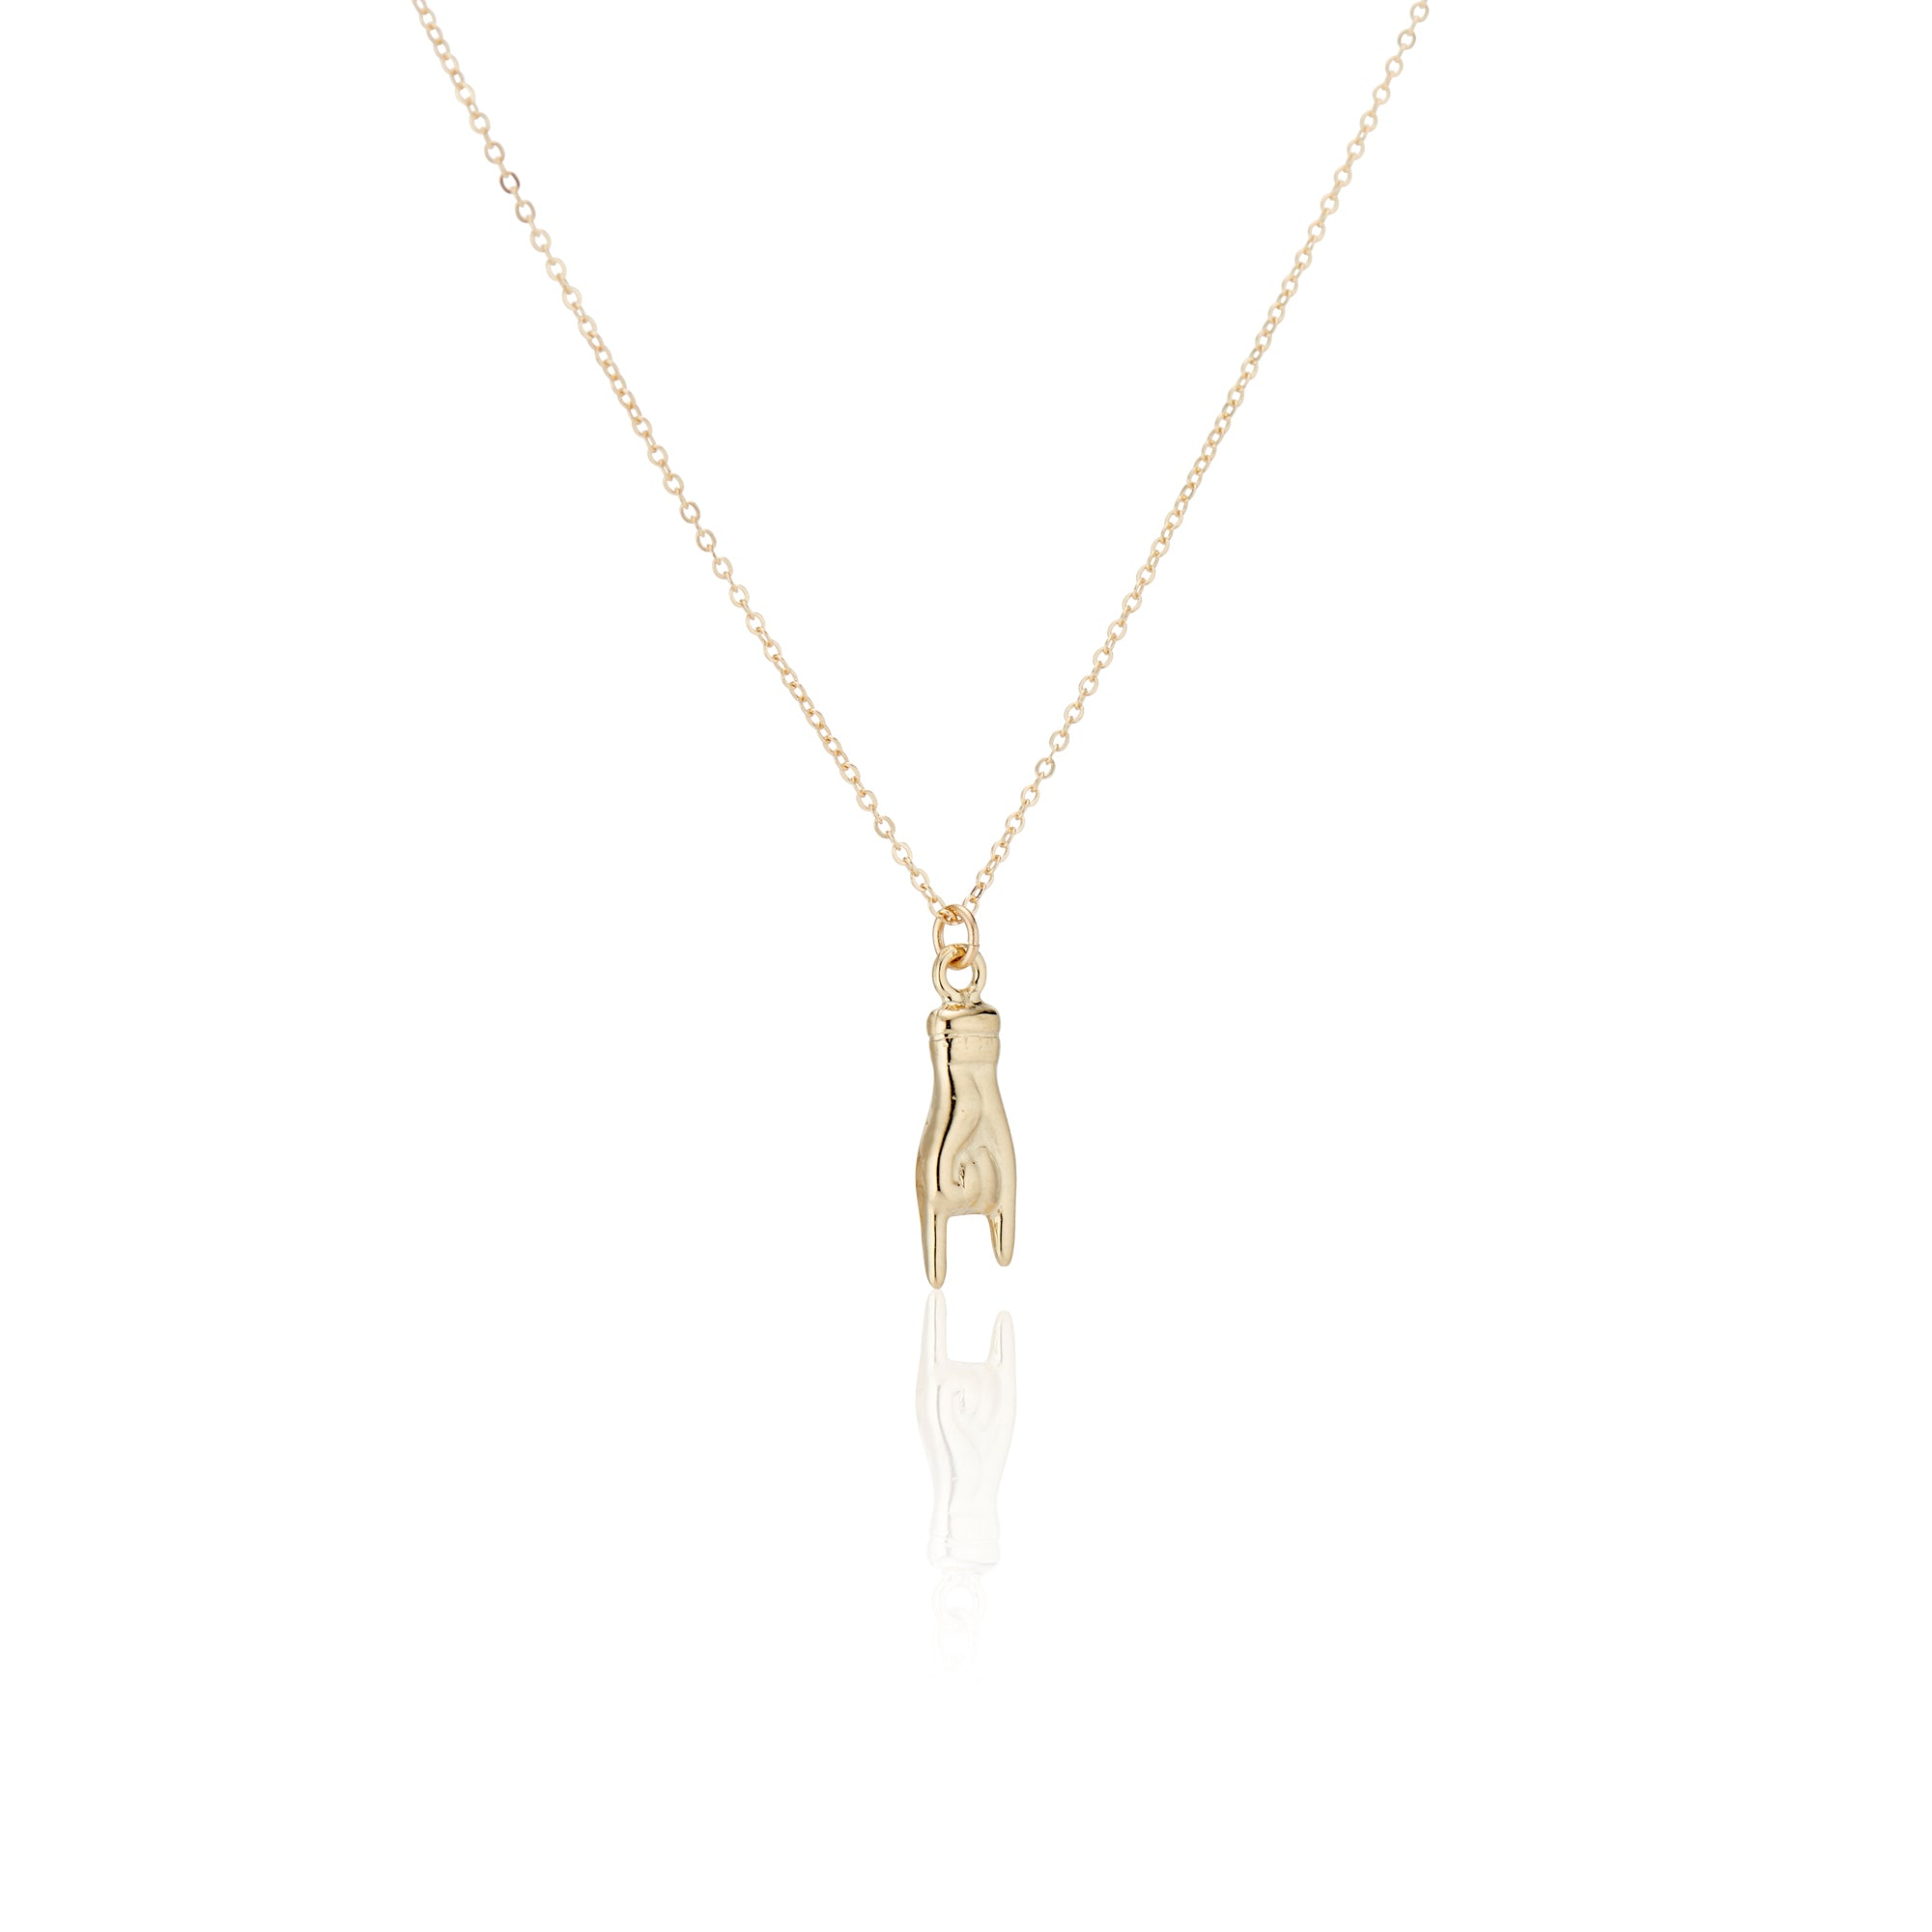 Golden Mano Cornuto Necklace - Charlie and Marcelle